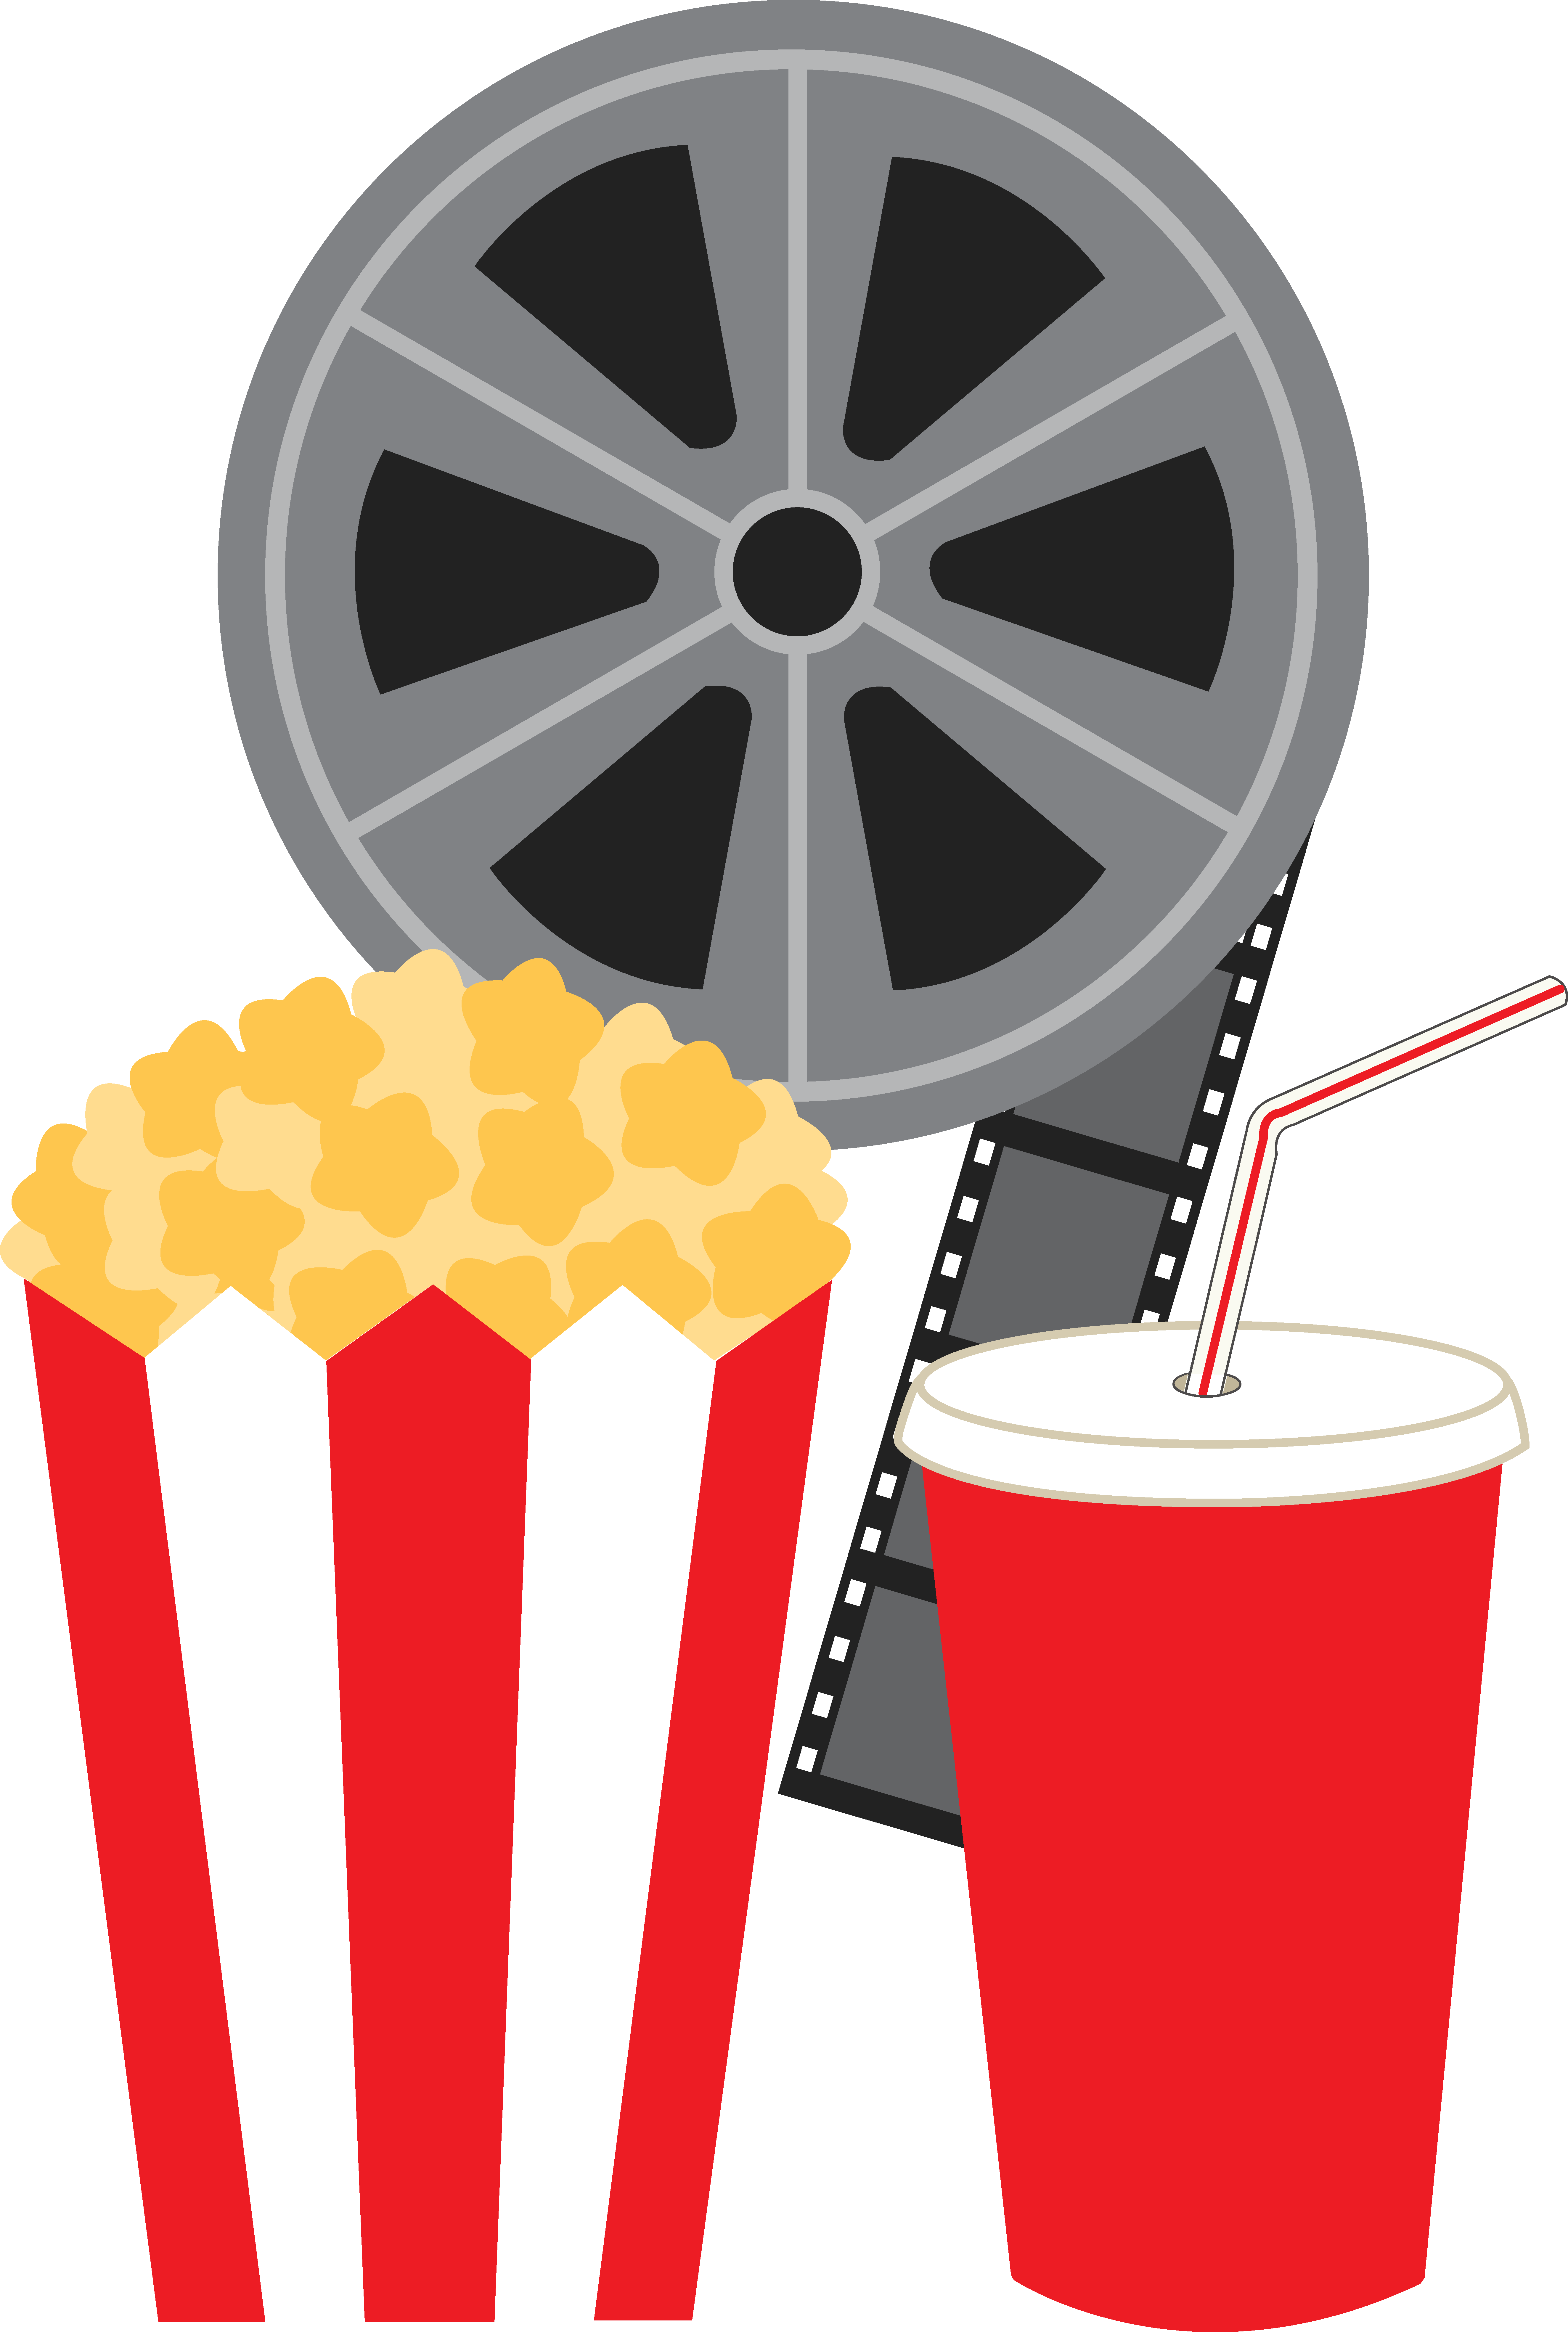 popcorn kernel clipart at getdrawings com free for personal use rh getdrawings com